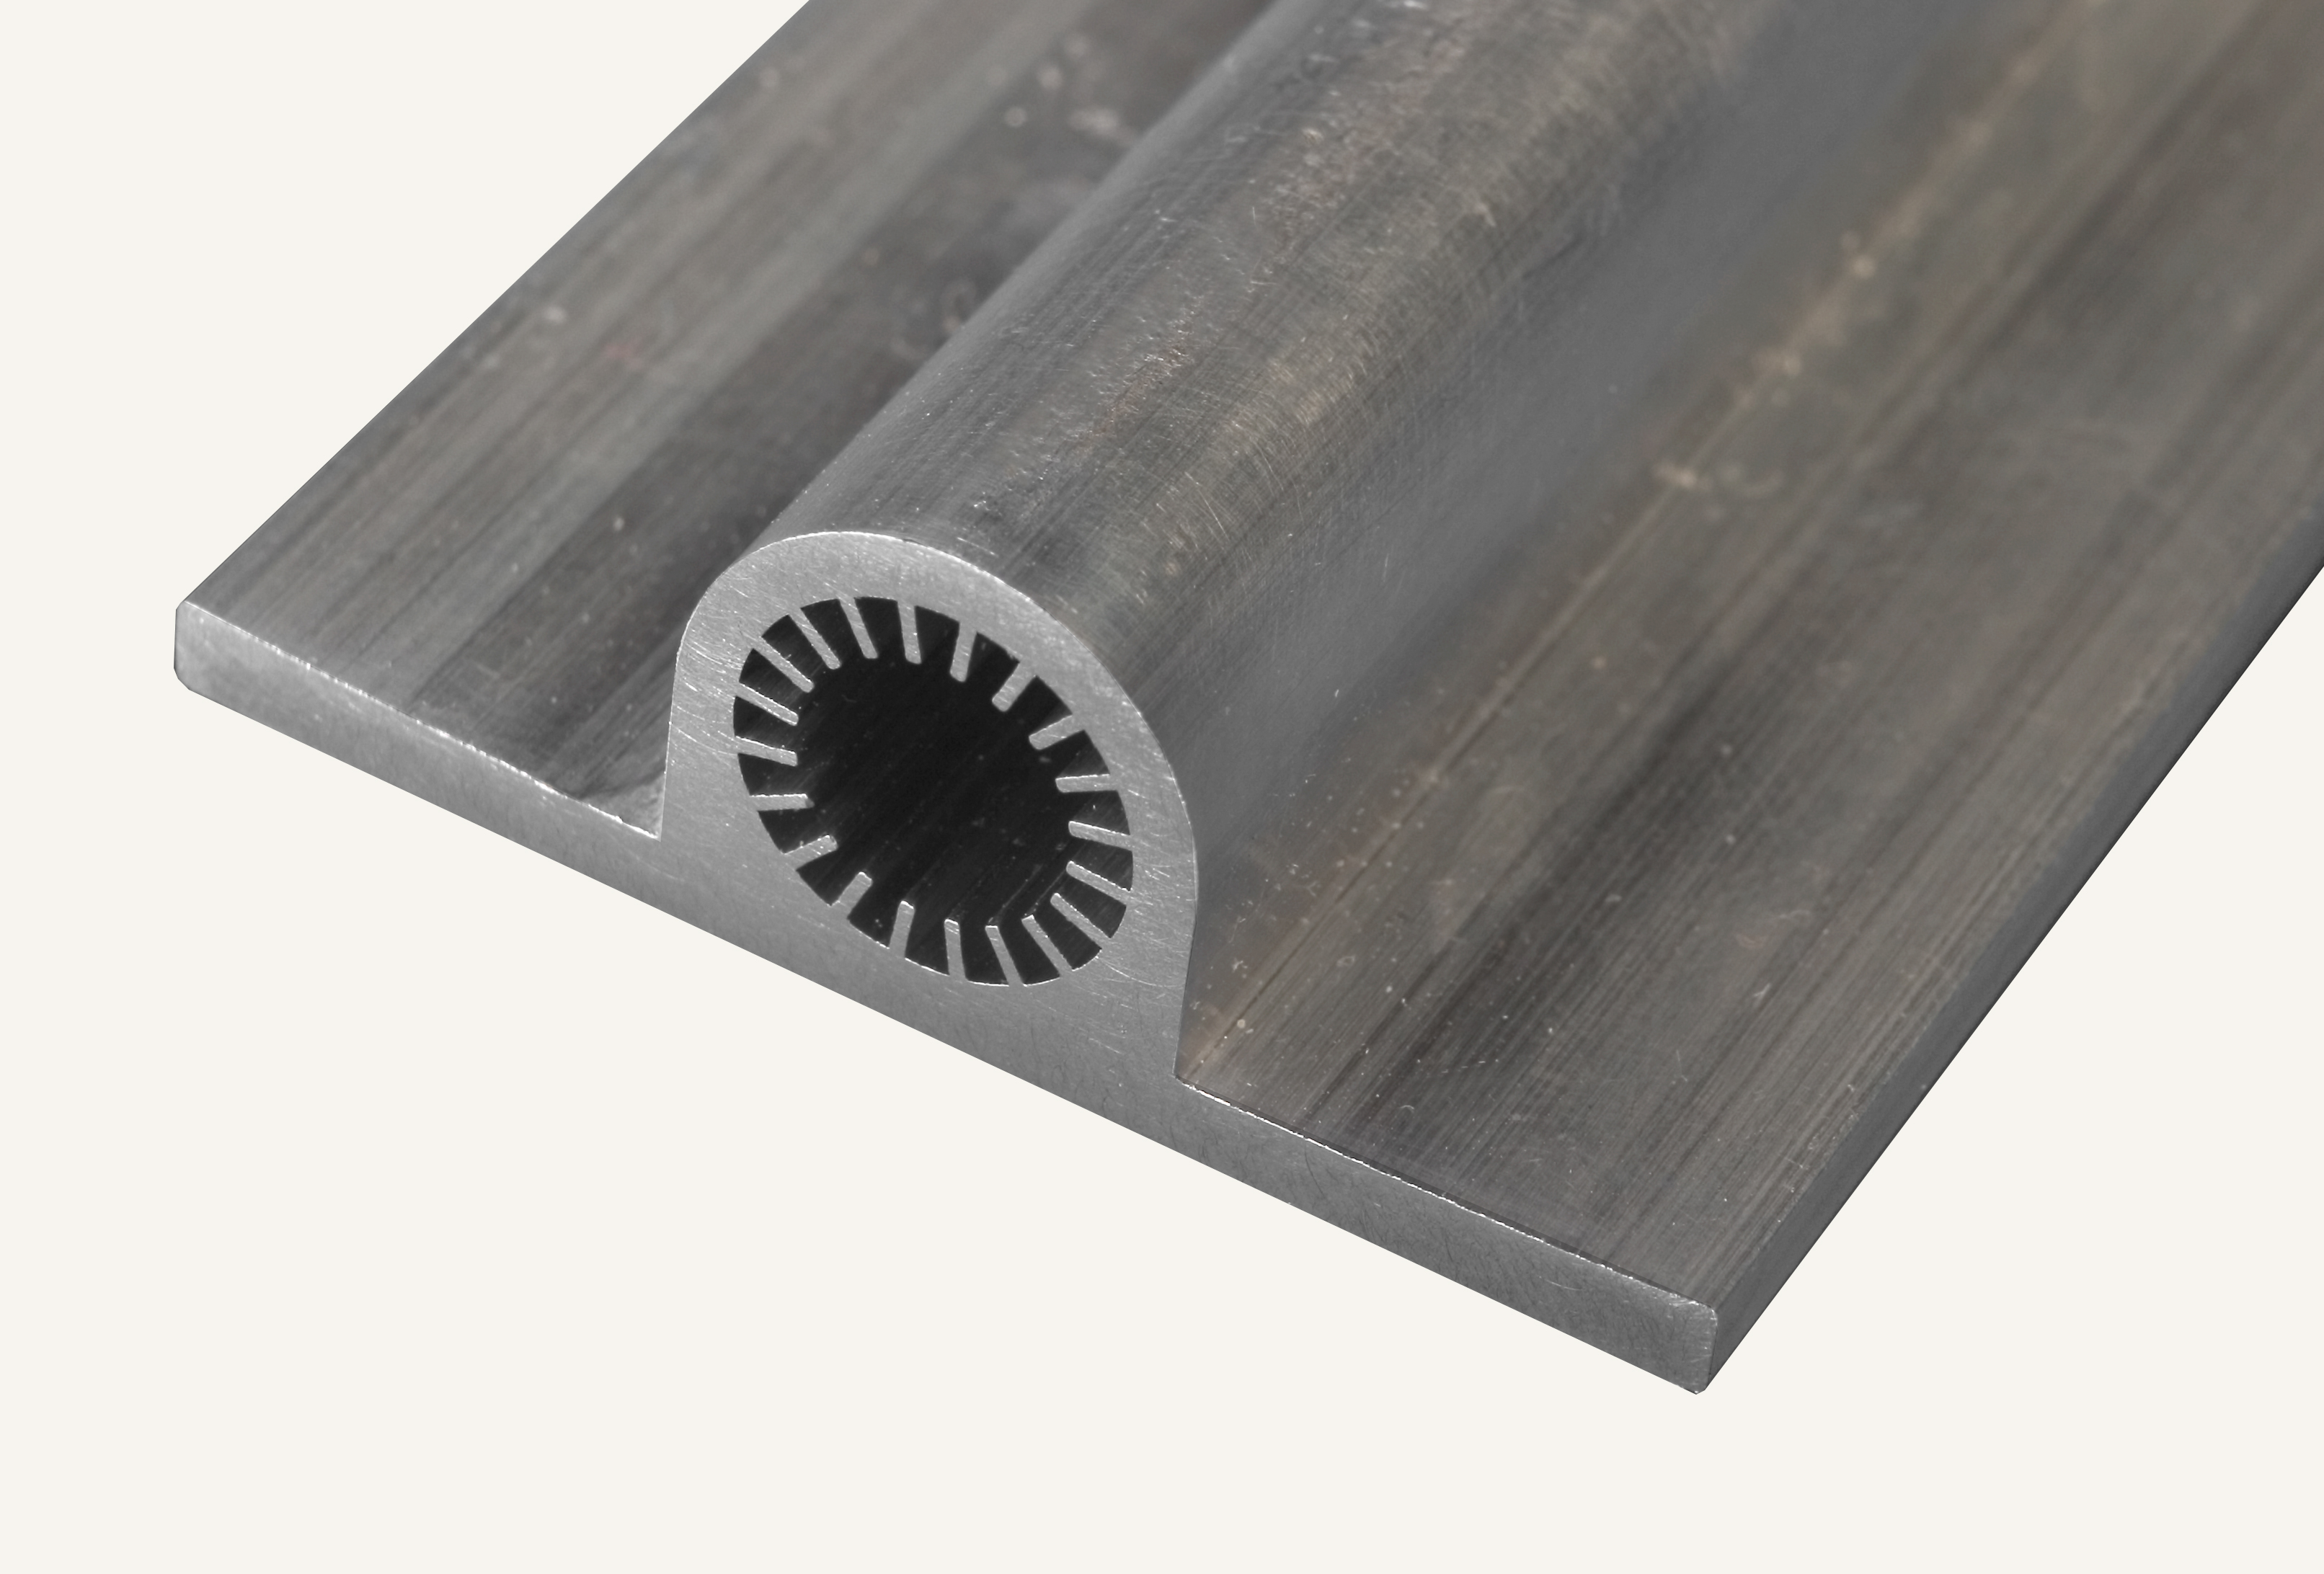 File:Grooved Aluminum Extrusion for Spacecraft Heat Pipes